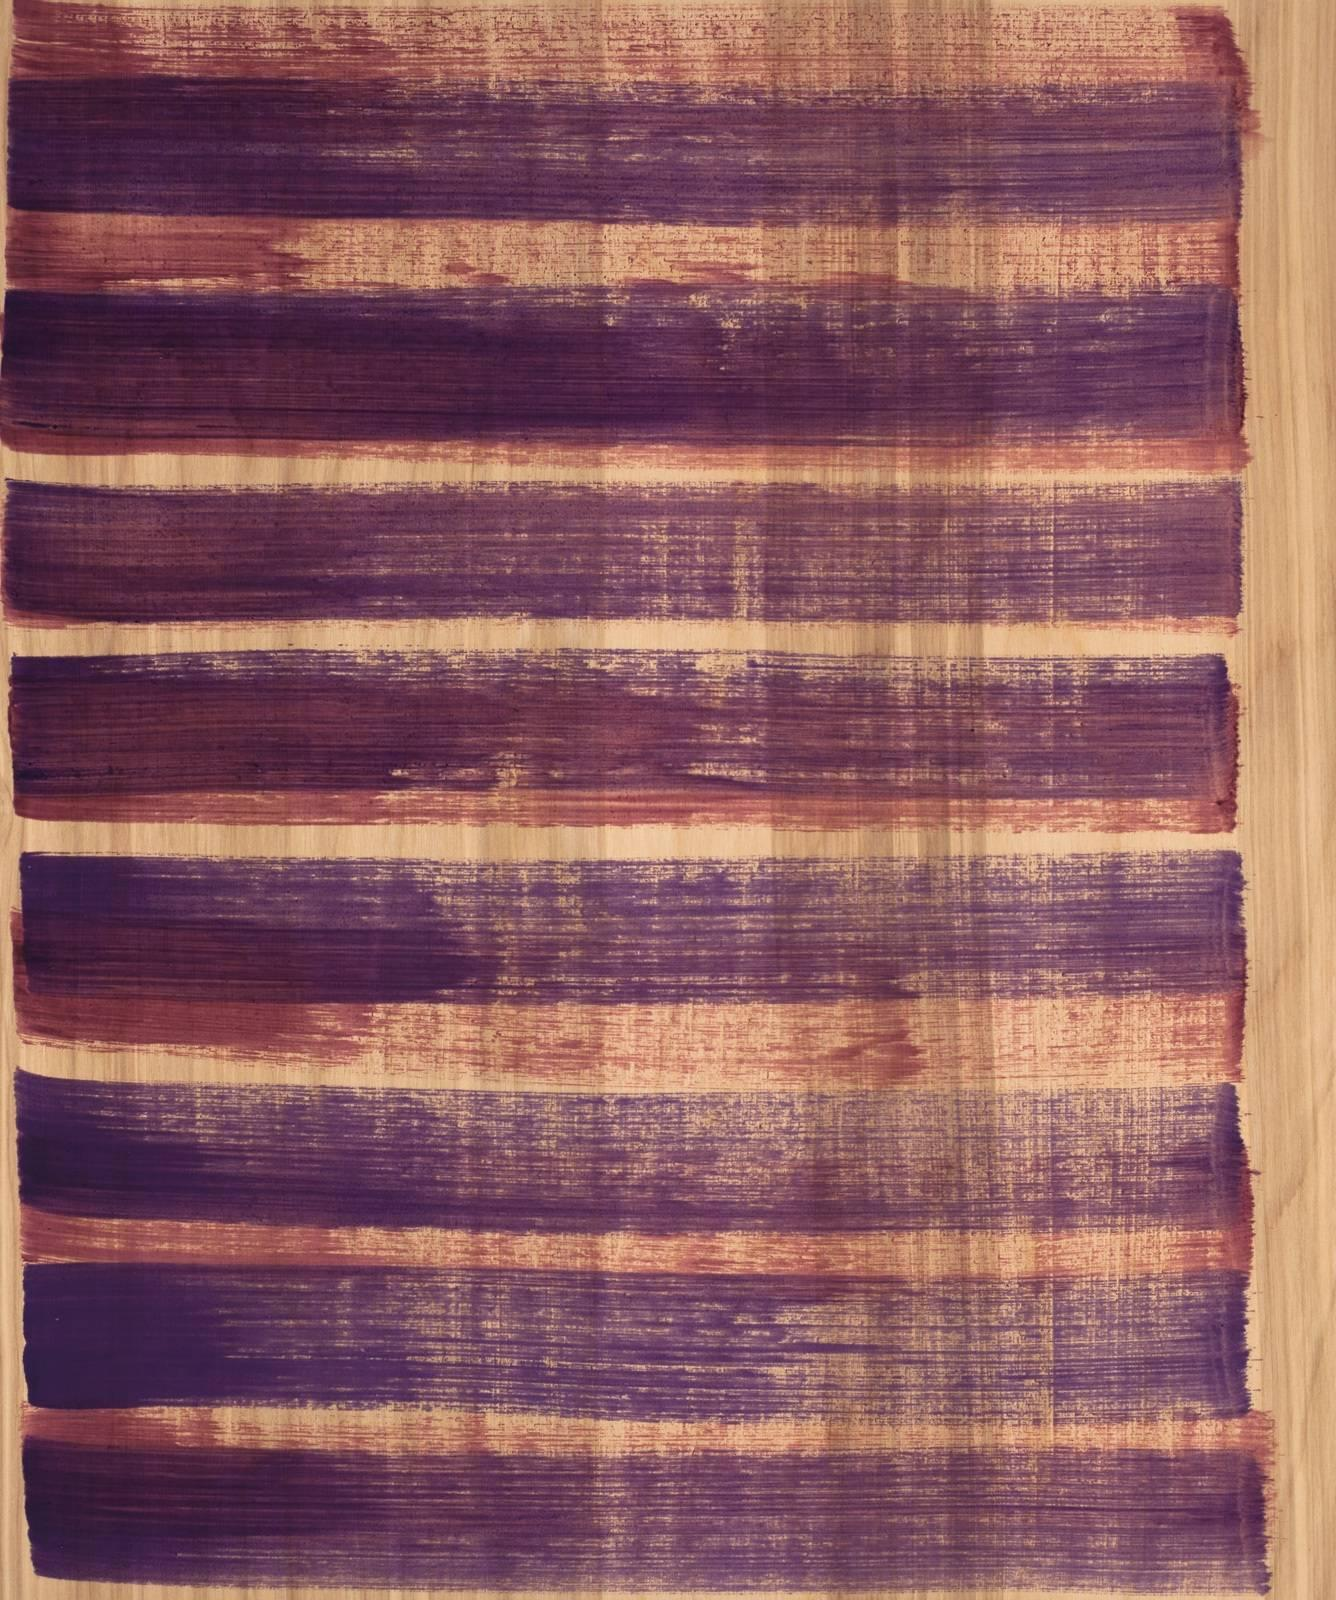 Emily Berger, Breath, 2014, oil paint, wood panel, Abstraction